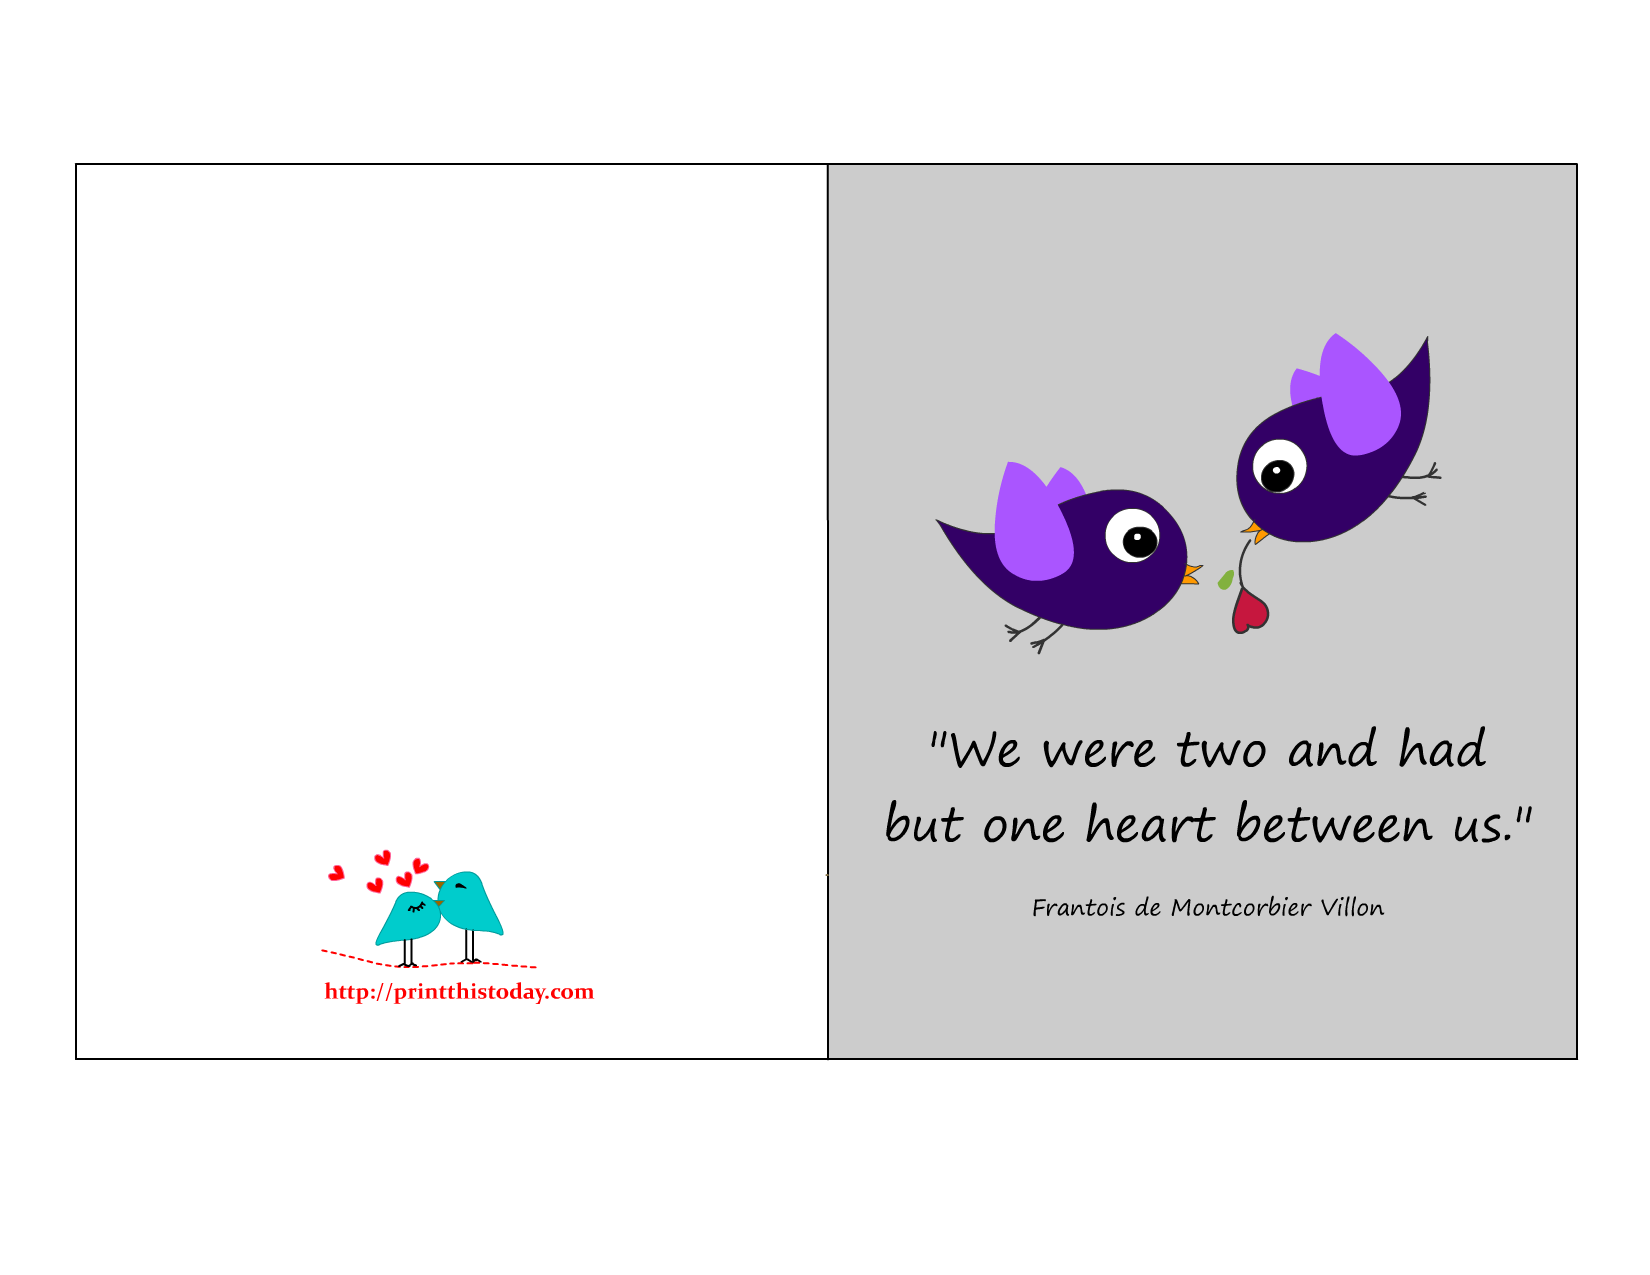 Love cards Images Wallpaper : Love cards And Quotes 26 Hd Wallpaper - Hdlovewall.com